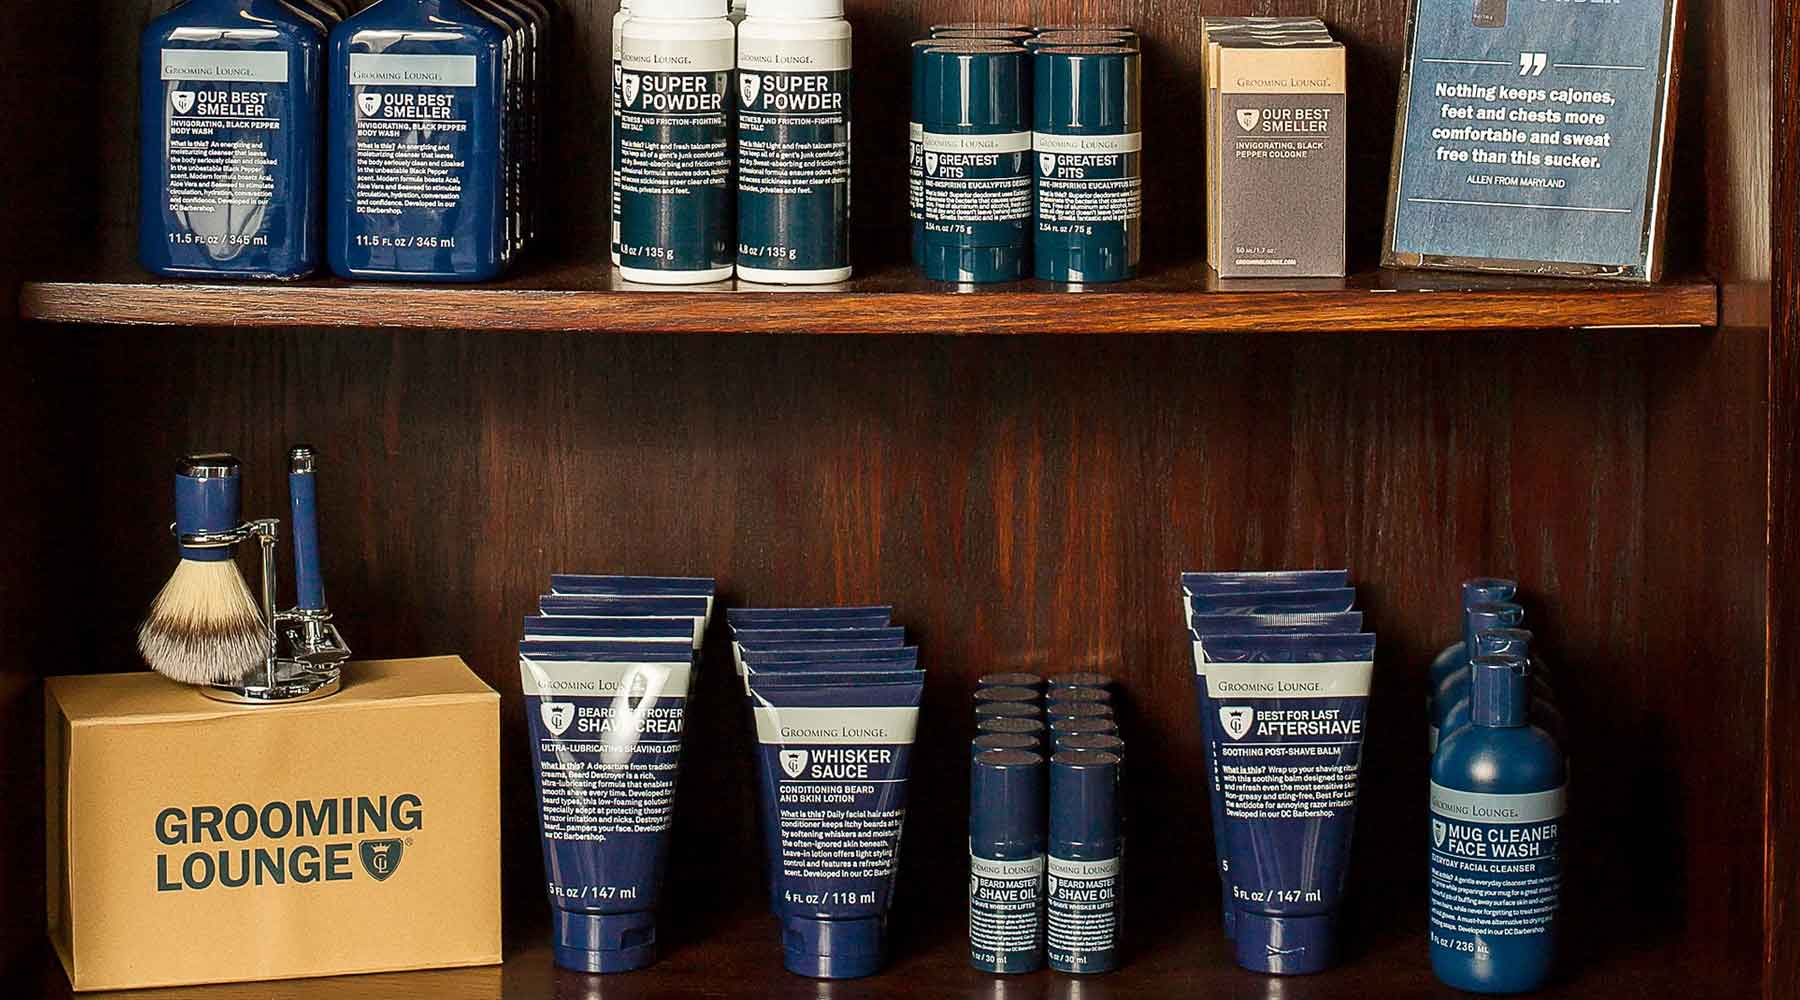 Travel Sized Men's Grooming Products